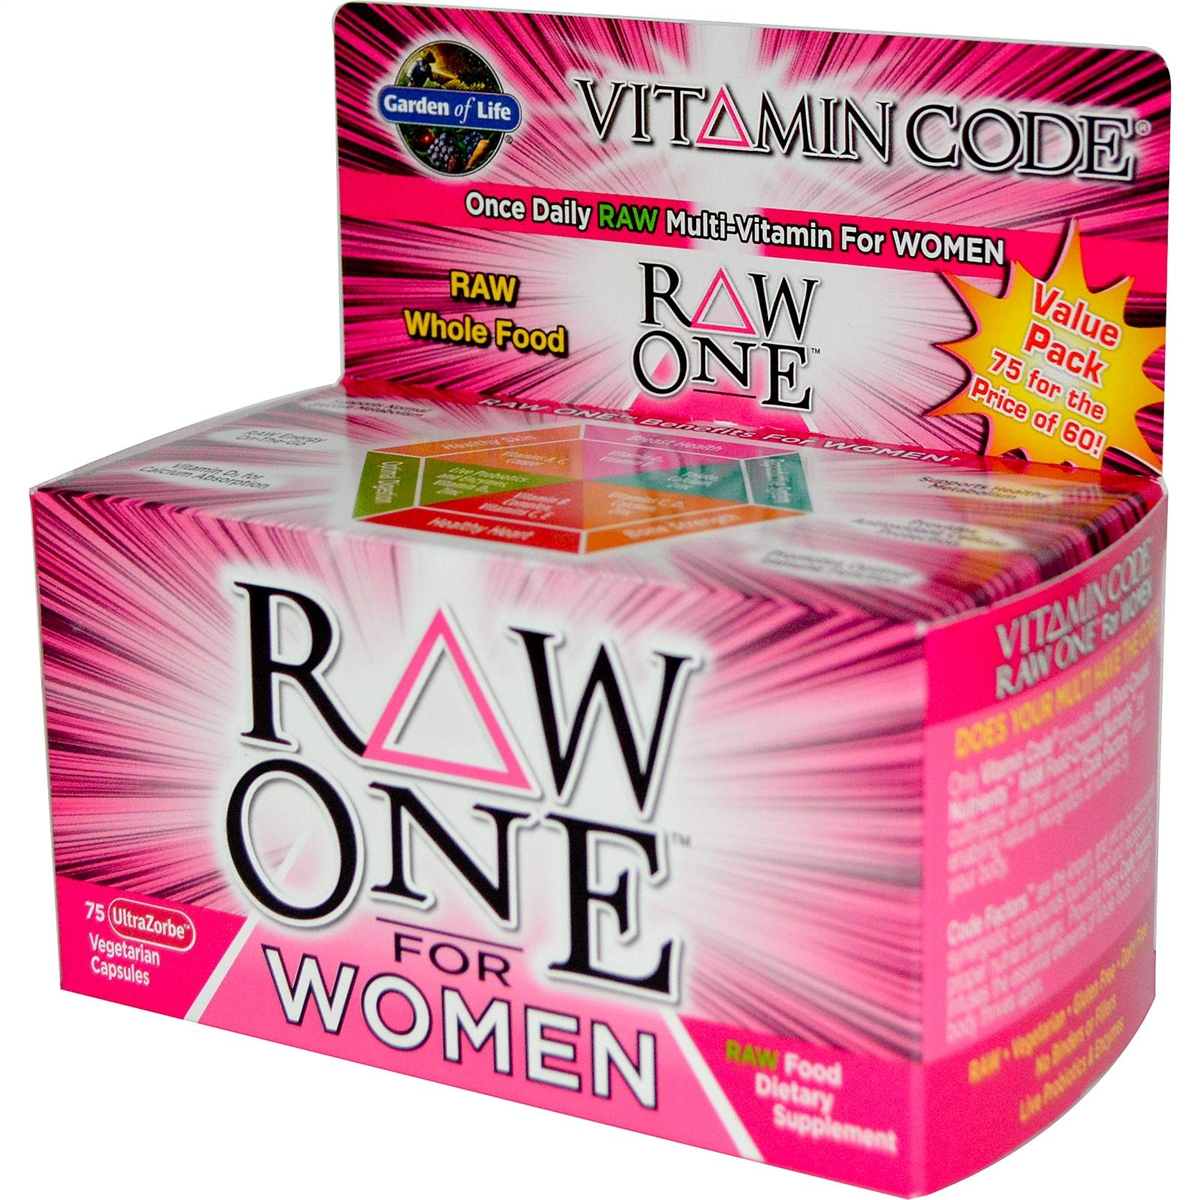 raw vitamin garden life women vegetarian for of by capsules code one